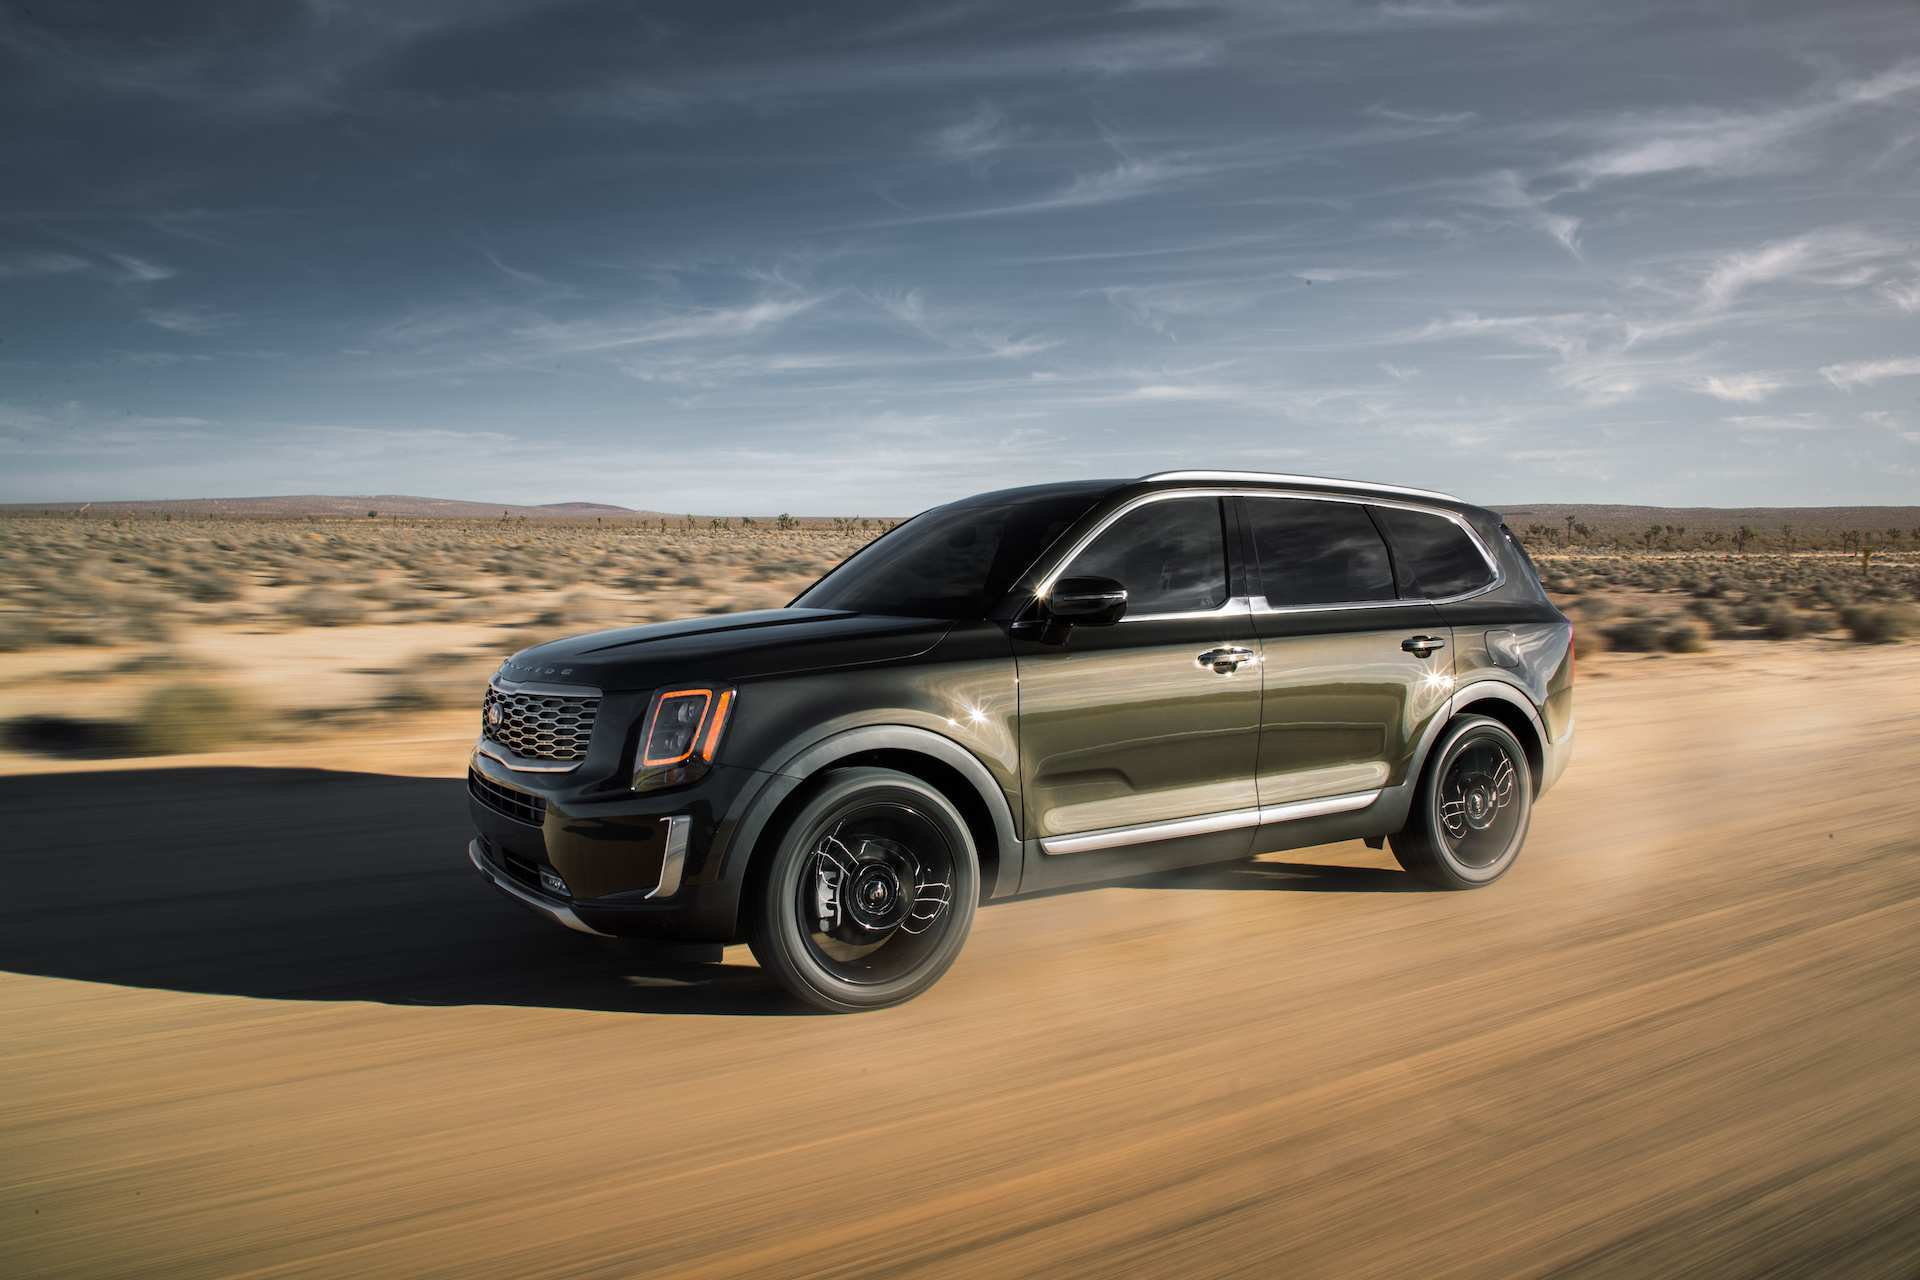 41 New 2020 Kia Telluride Sx Interior Research New by 2020 Kia Telluride Sx Interior